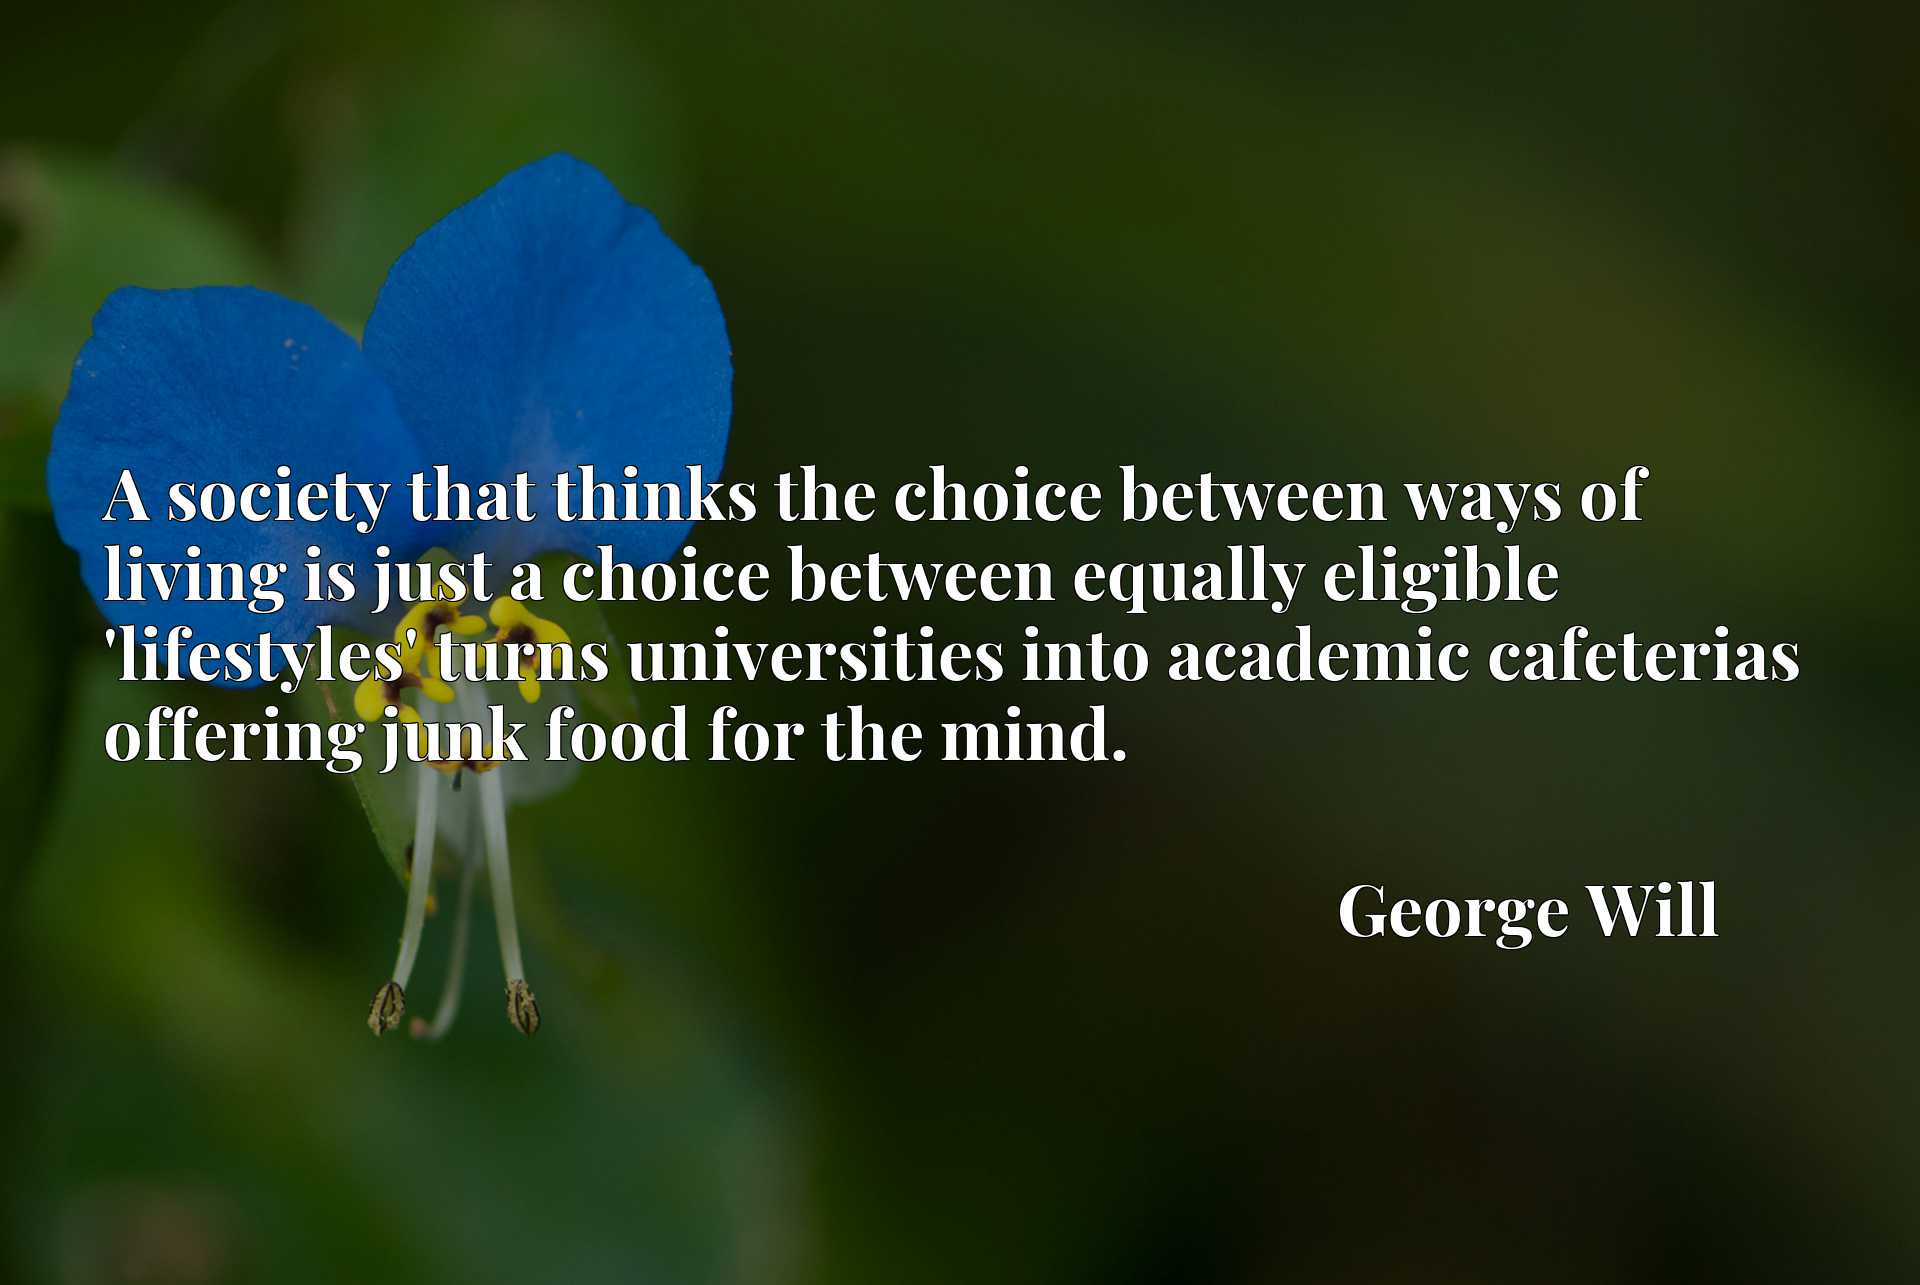 A society that thinks the choice between ways of living is just a choice between equally eligible 'lifestyles' turns universities into academic cafeterias offering junk food for the mind.